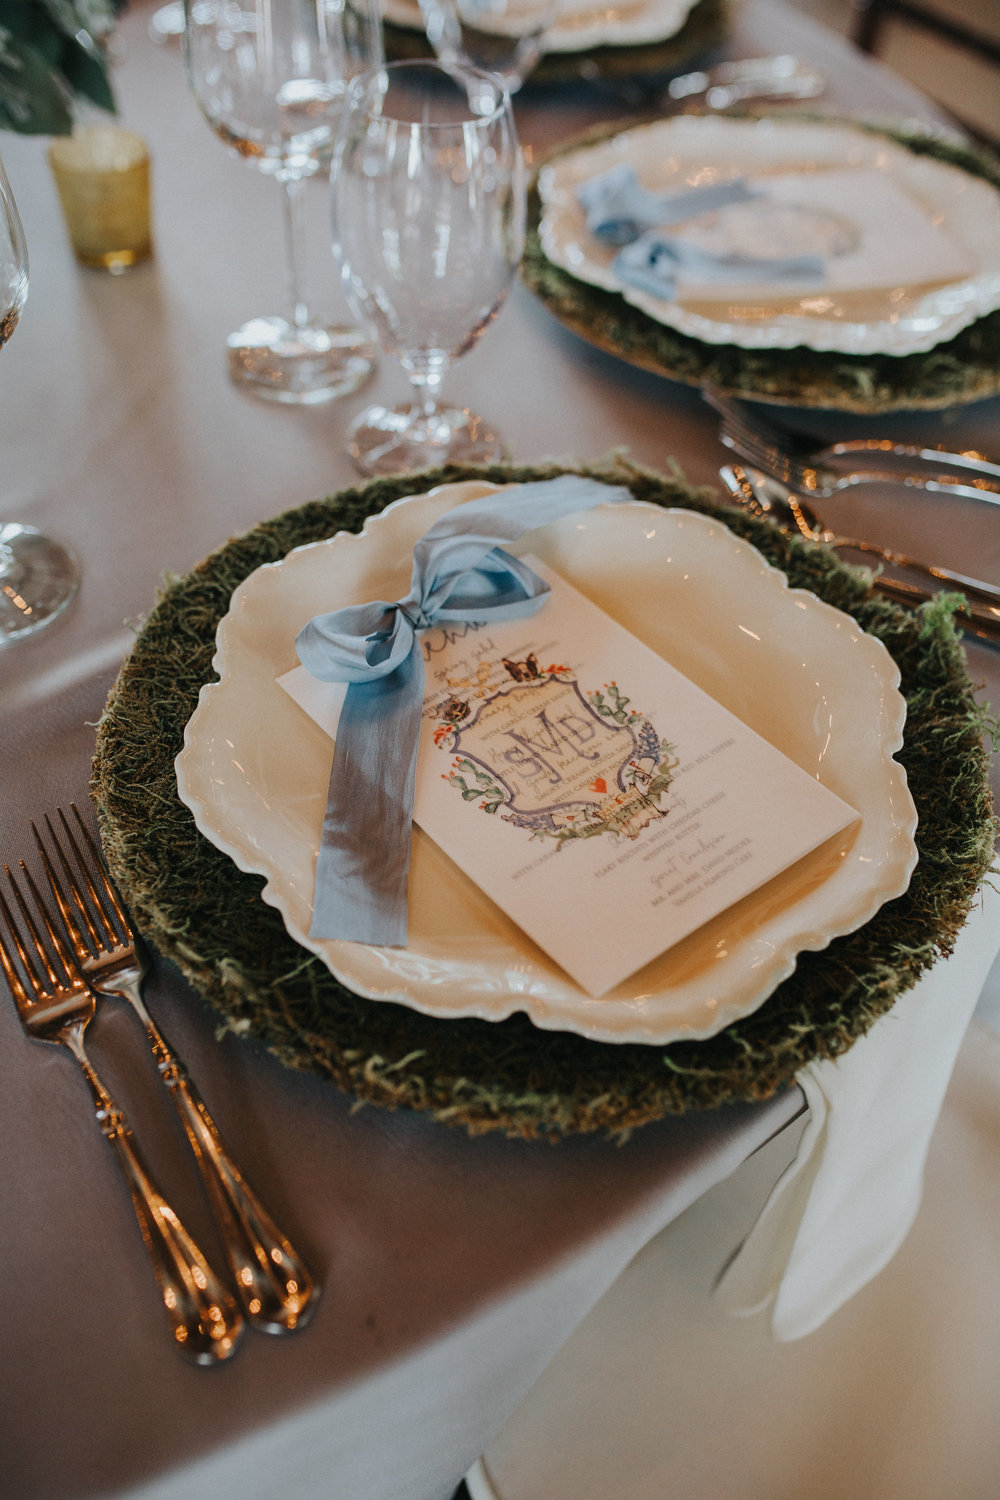 The custom menus featured the crest printed on a vellum overlay, tied together with a silk ribbon.